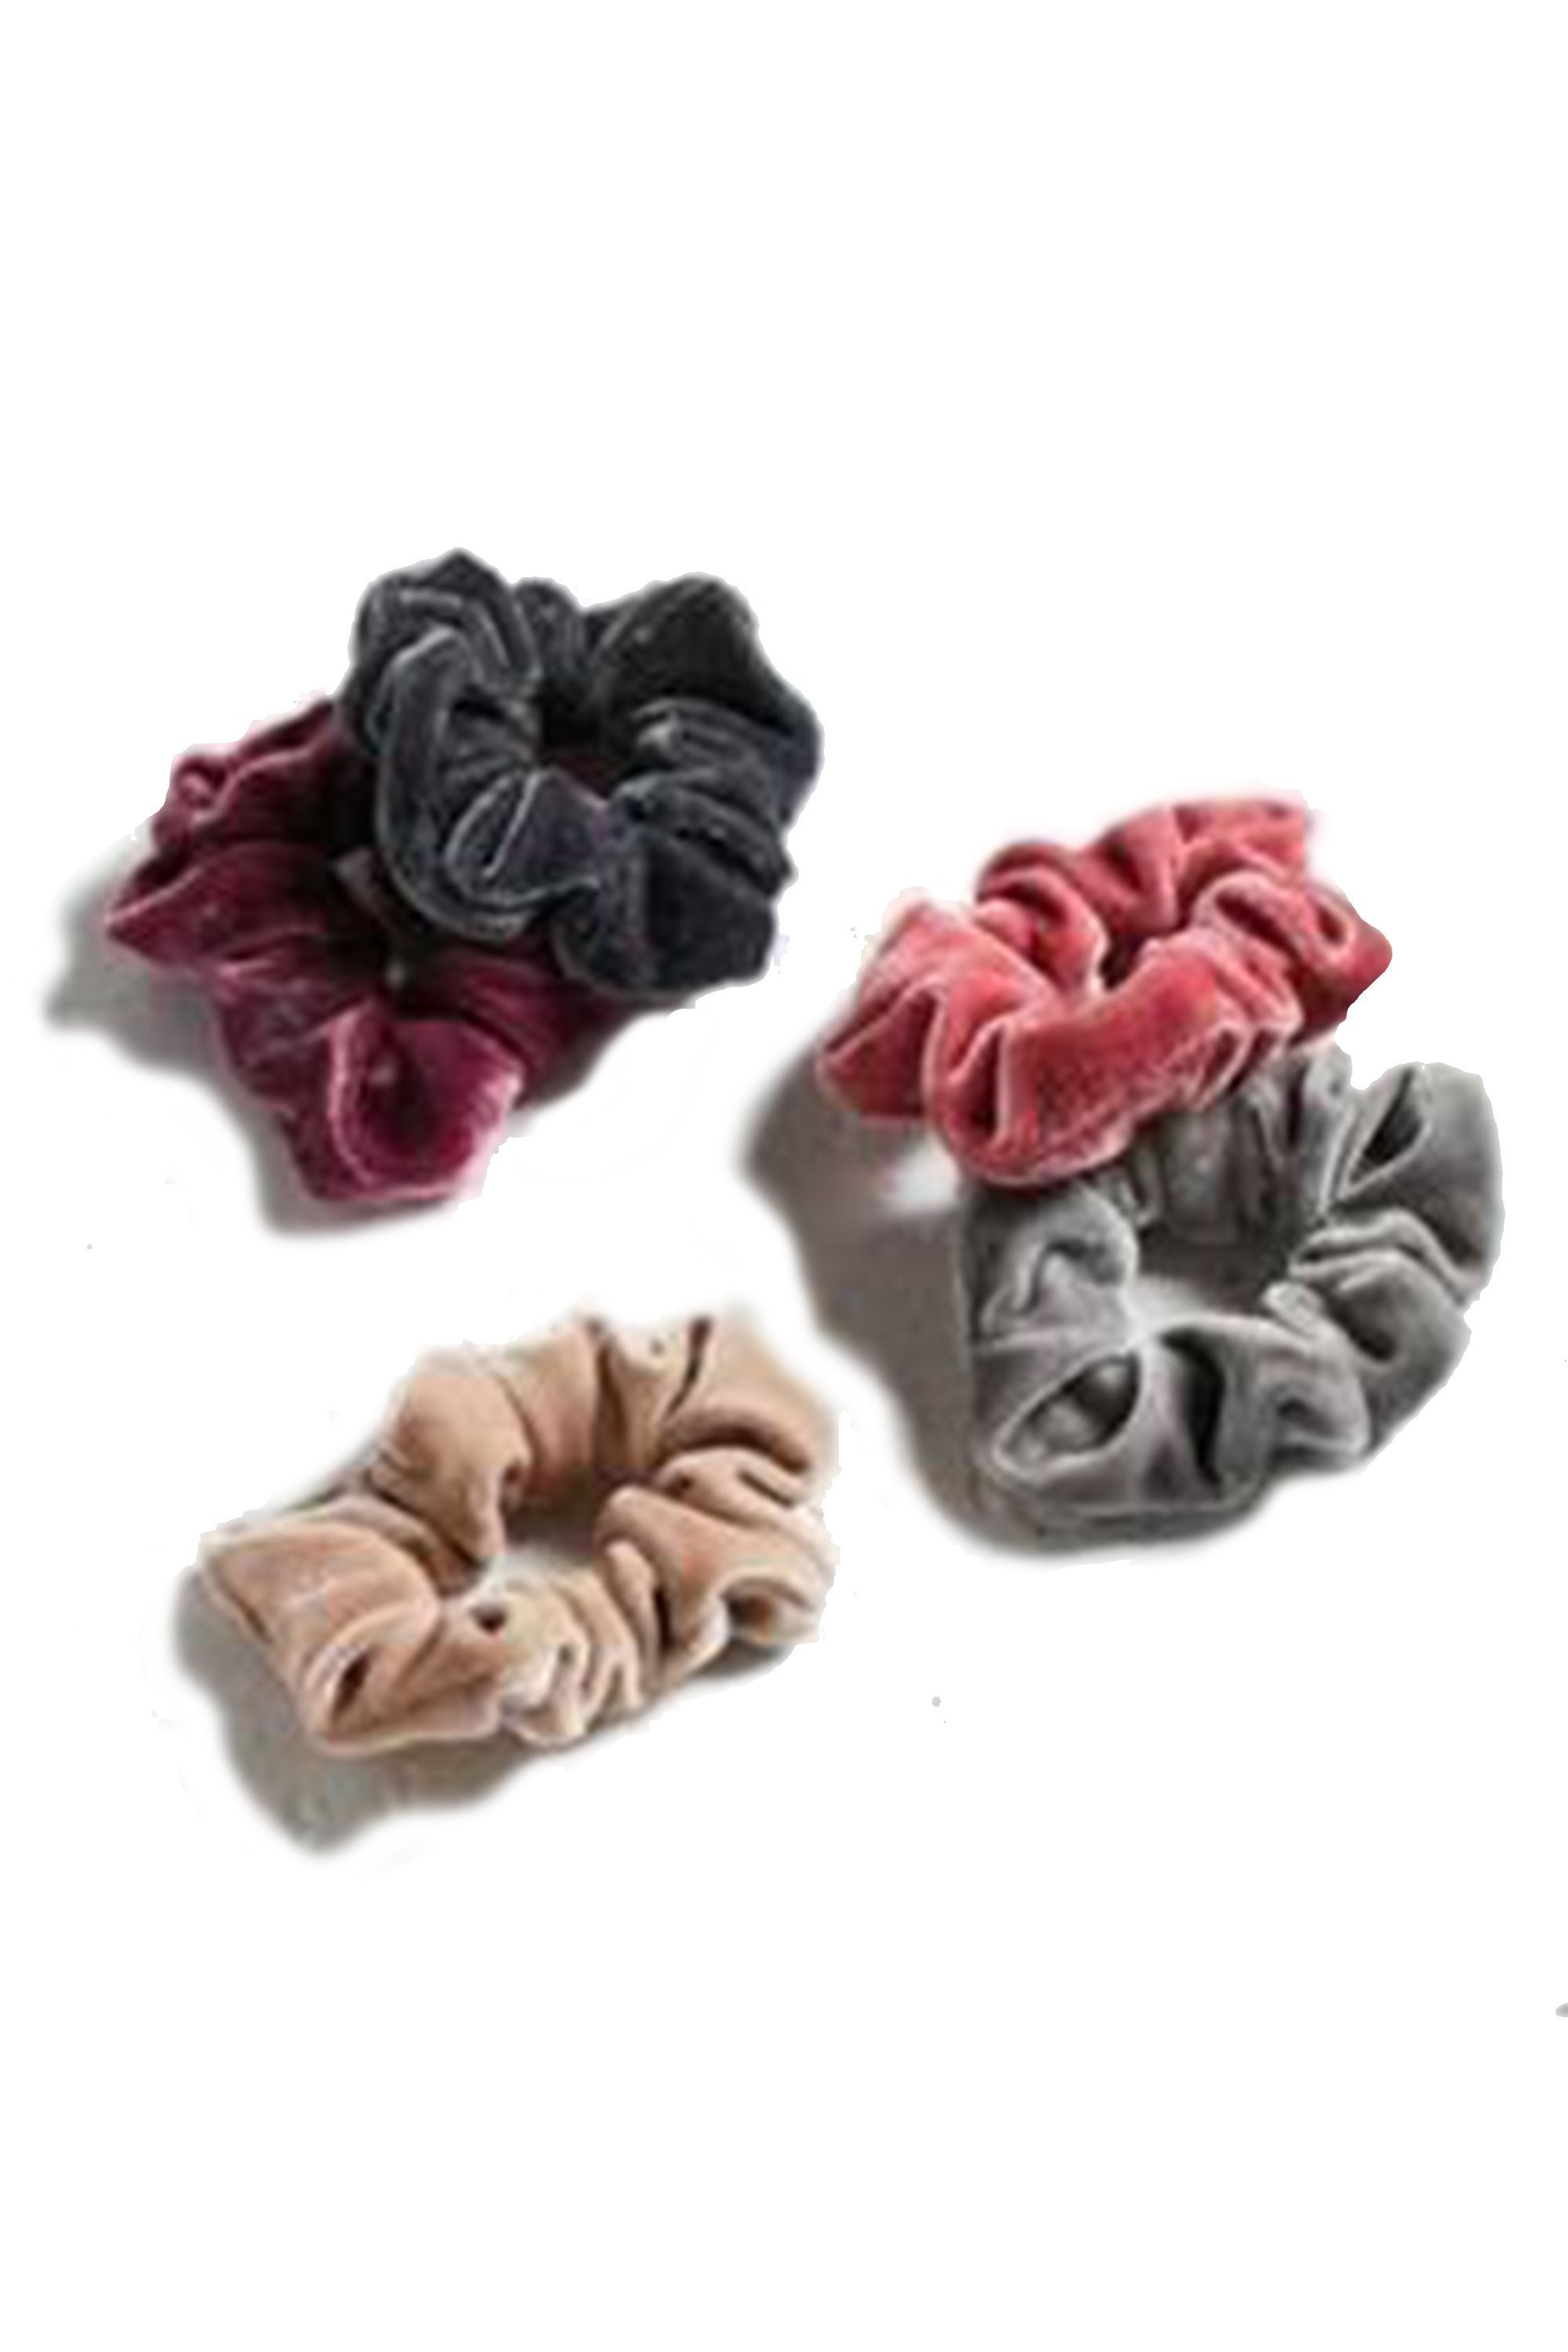 10 Hair Ties For Any Hair Texture or Situation - 10 Best Rubber Bands 839266c4595